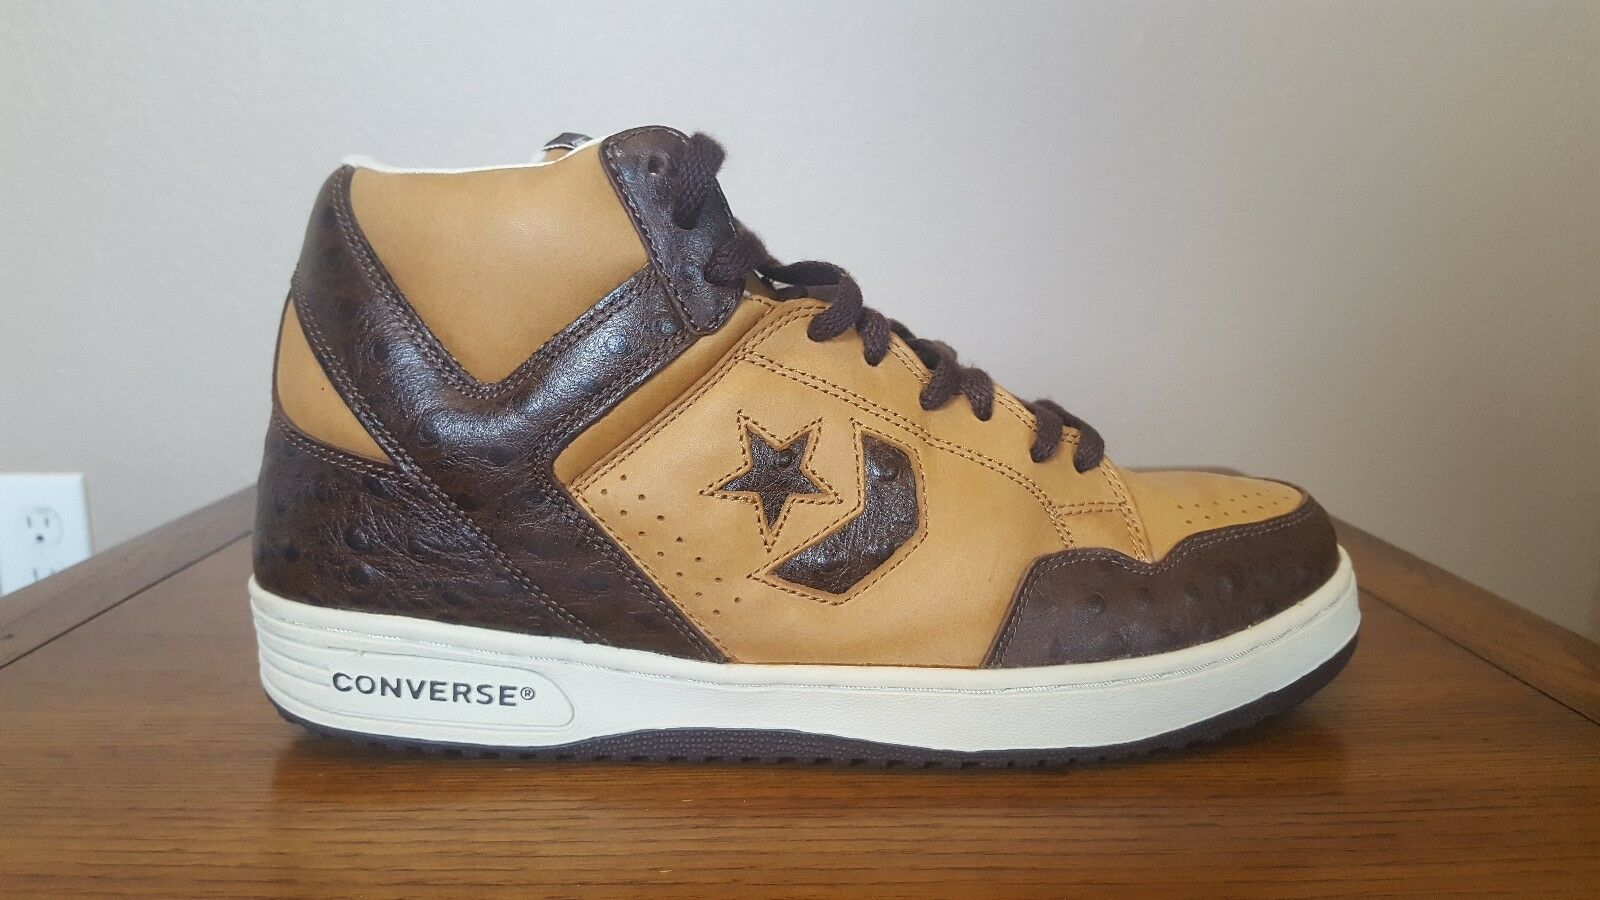 CONVERSE WEAPON BROWN BASKETBALL / OSTRICH BASKETBALL BROWN SHOES SIZE 11.5 6bbf1e